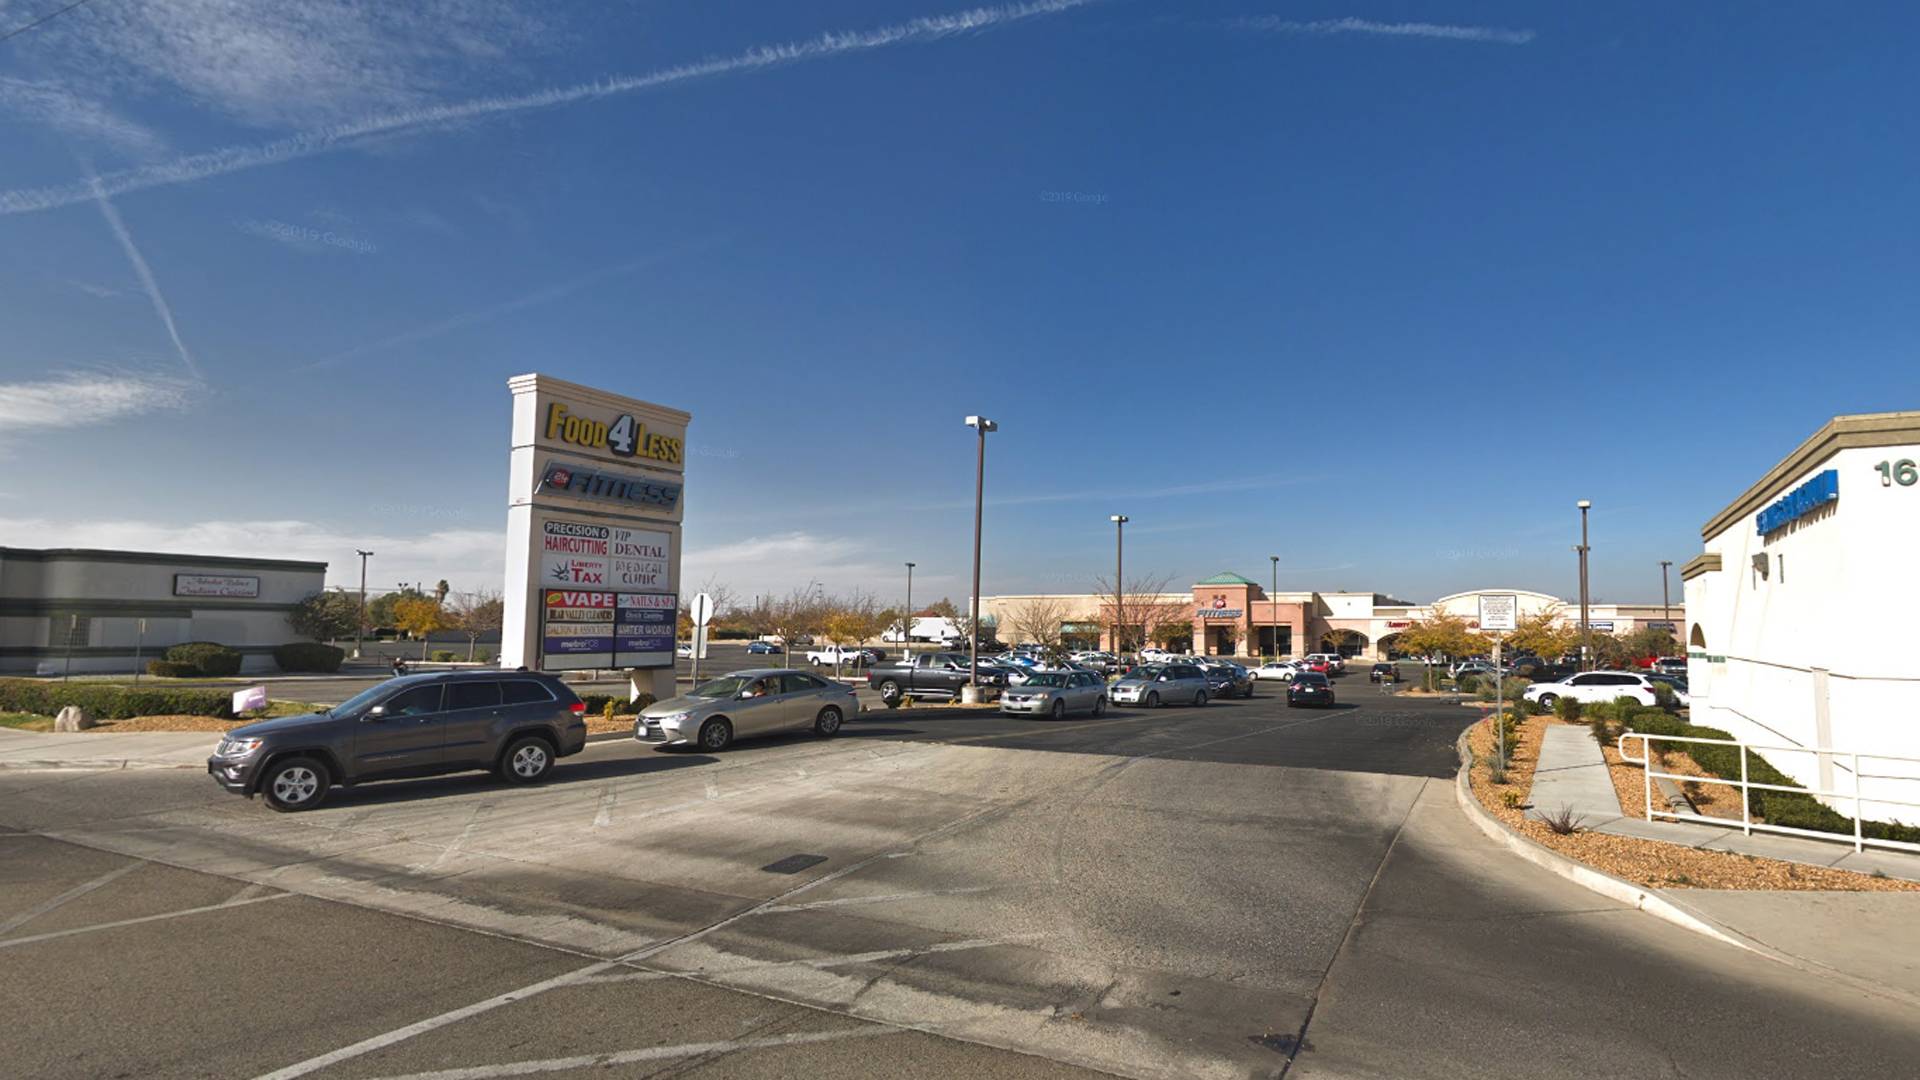 A shopping center in the 16200 block of Bear Valley Road in Victorville, as pictured in an Google Street View image in November of 2018.